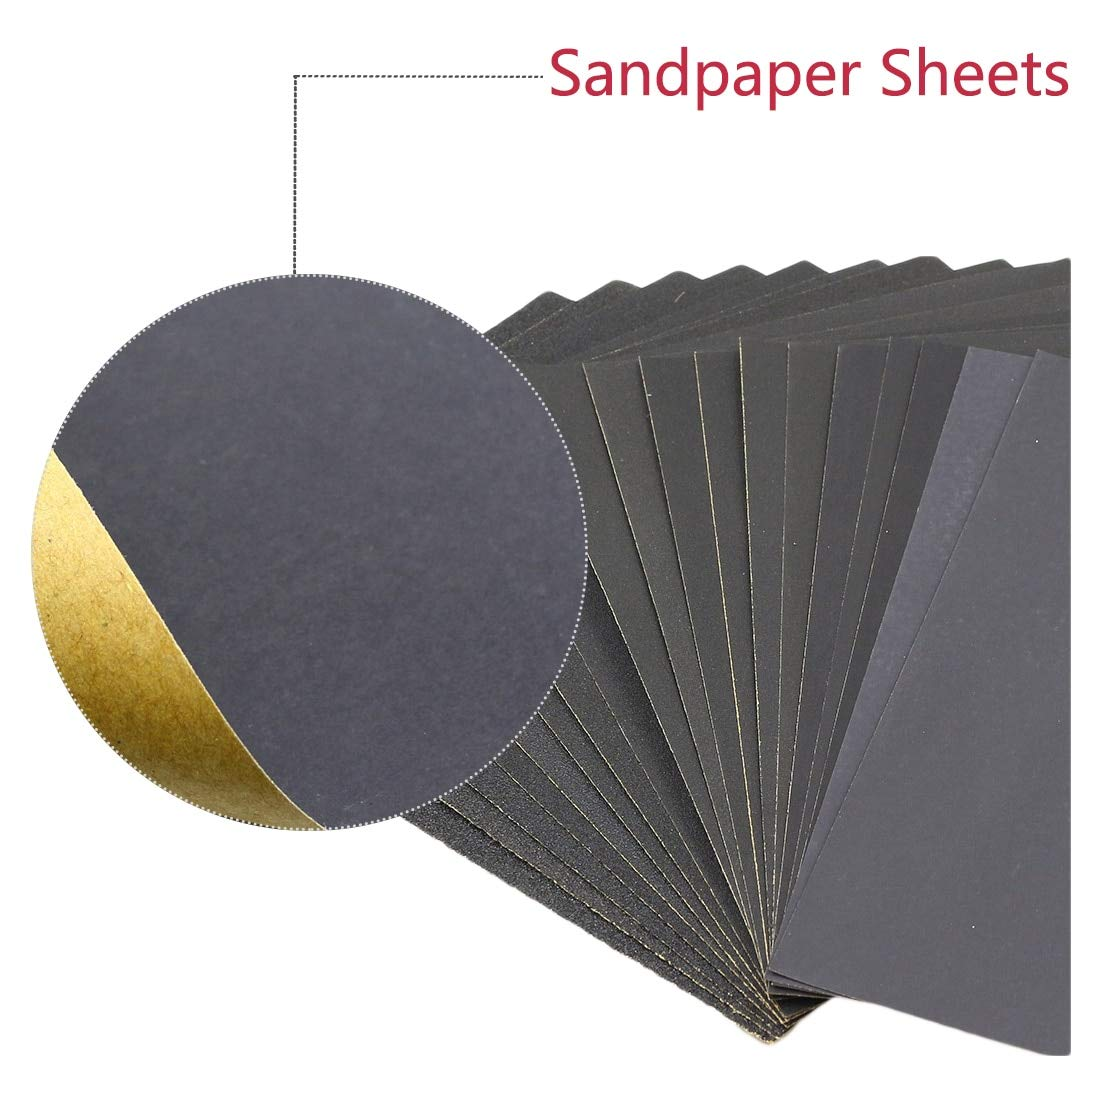 20Pcs Wet or Dry Sandpaper 180-3000Grit Waterproof Paper High Quality Full Size